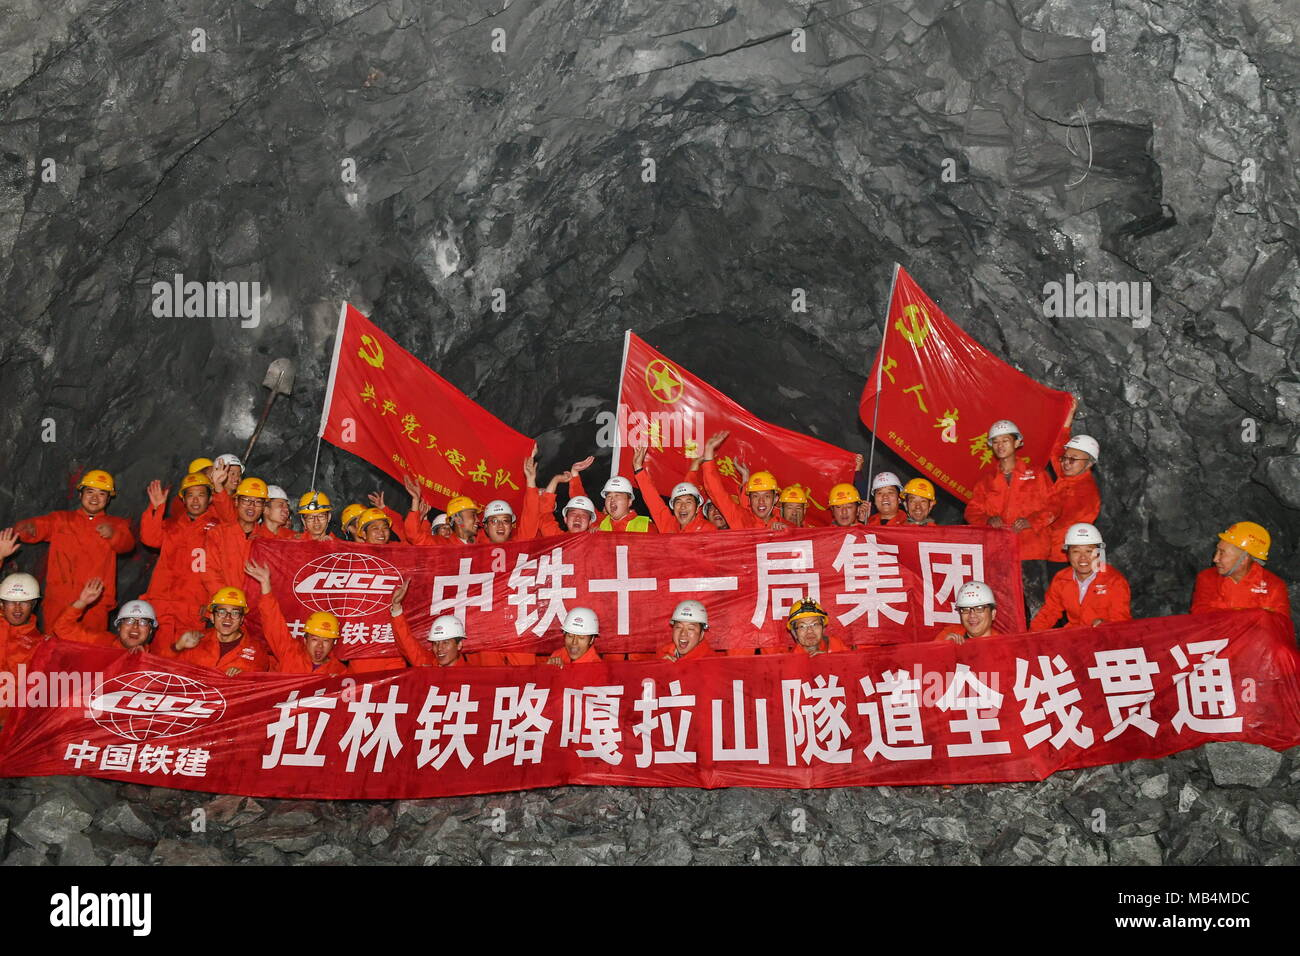 Lhasa, China's Tibet Autonomous Region. 7th Apr, 2018. Workers celebrate the holing-through at the construction site of the Galashan Tunnel in Lhasa, southwest China's Tibet Autonomous Region, April 7, 2018. The 4,373-km-long tunnel, about 3,600 meters of altitude, is part of the Lhasa to Nyingchi railway. Credit: Zhang Rufeng/Xinhua/Alamy Live News - Stock Image